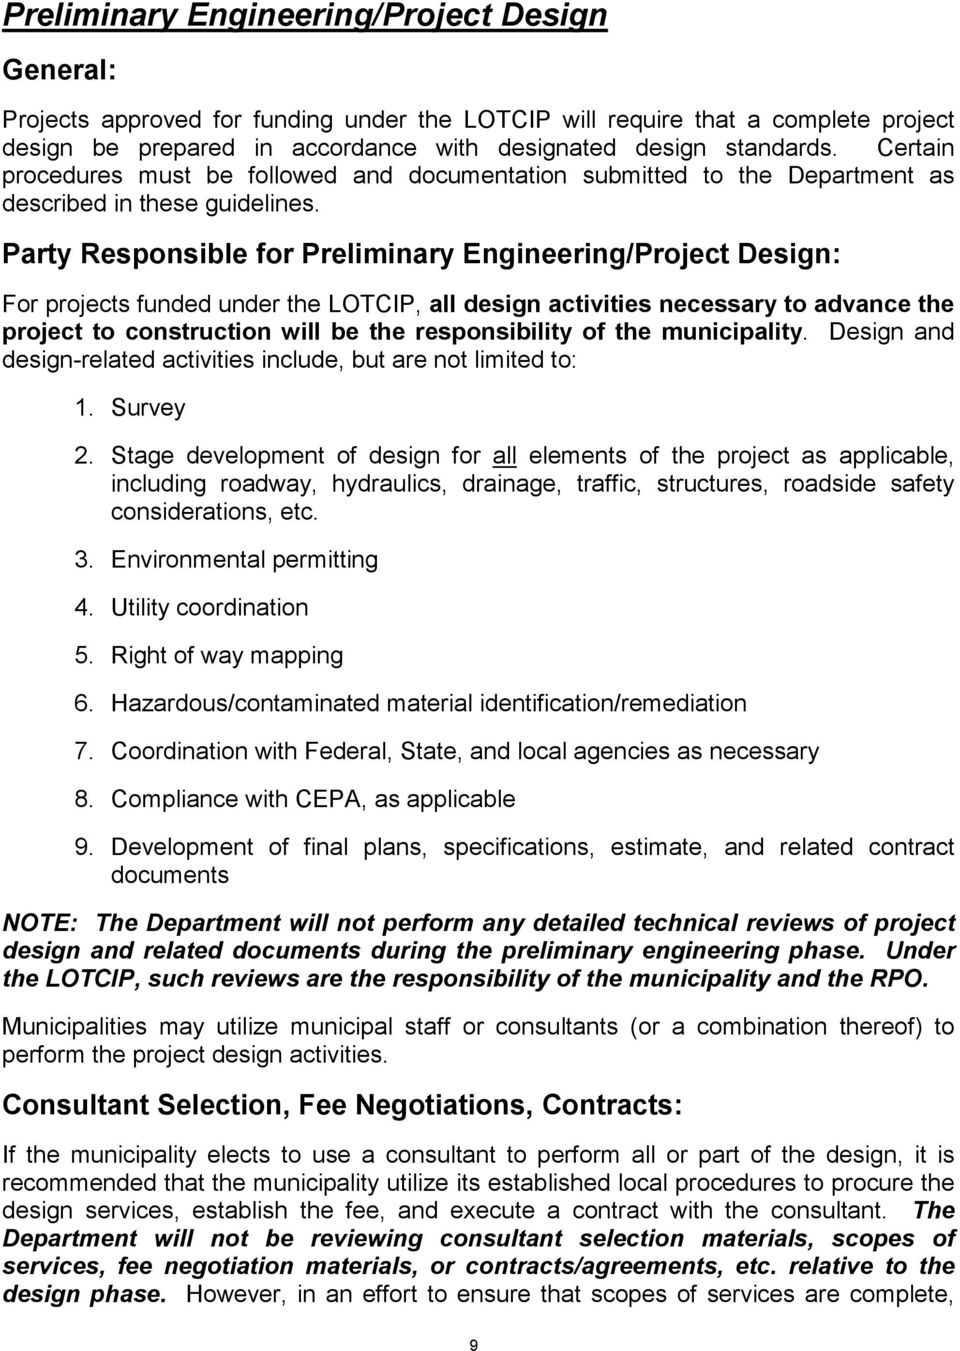 Party Responsible for Preliminary Engineering/Project Design: For projects funded under the LOTCIP, all design activities necessary to advance the project to construction will be the responsibility